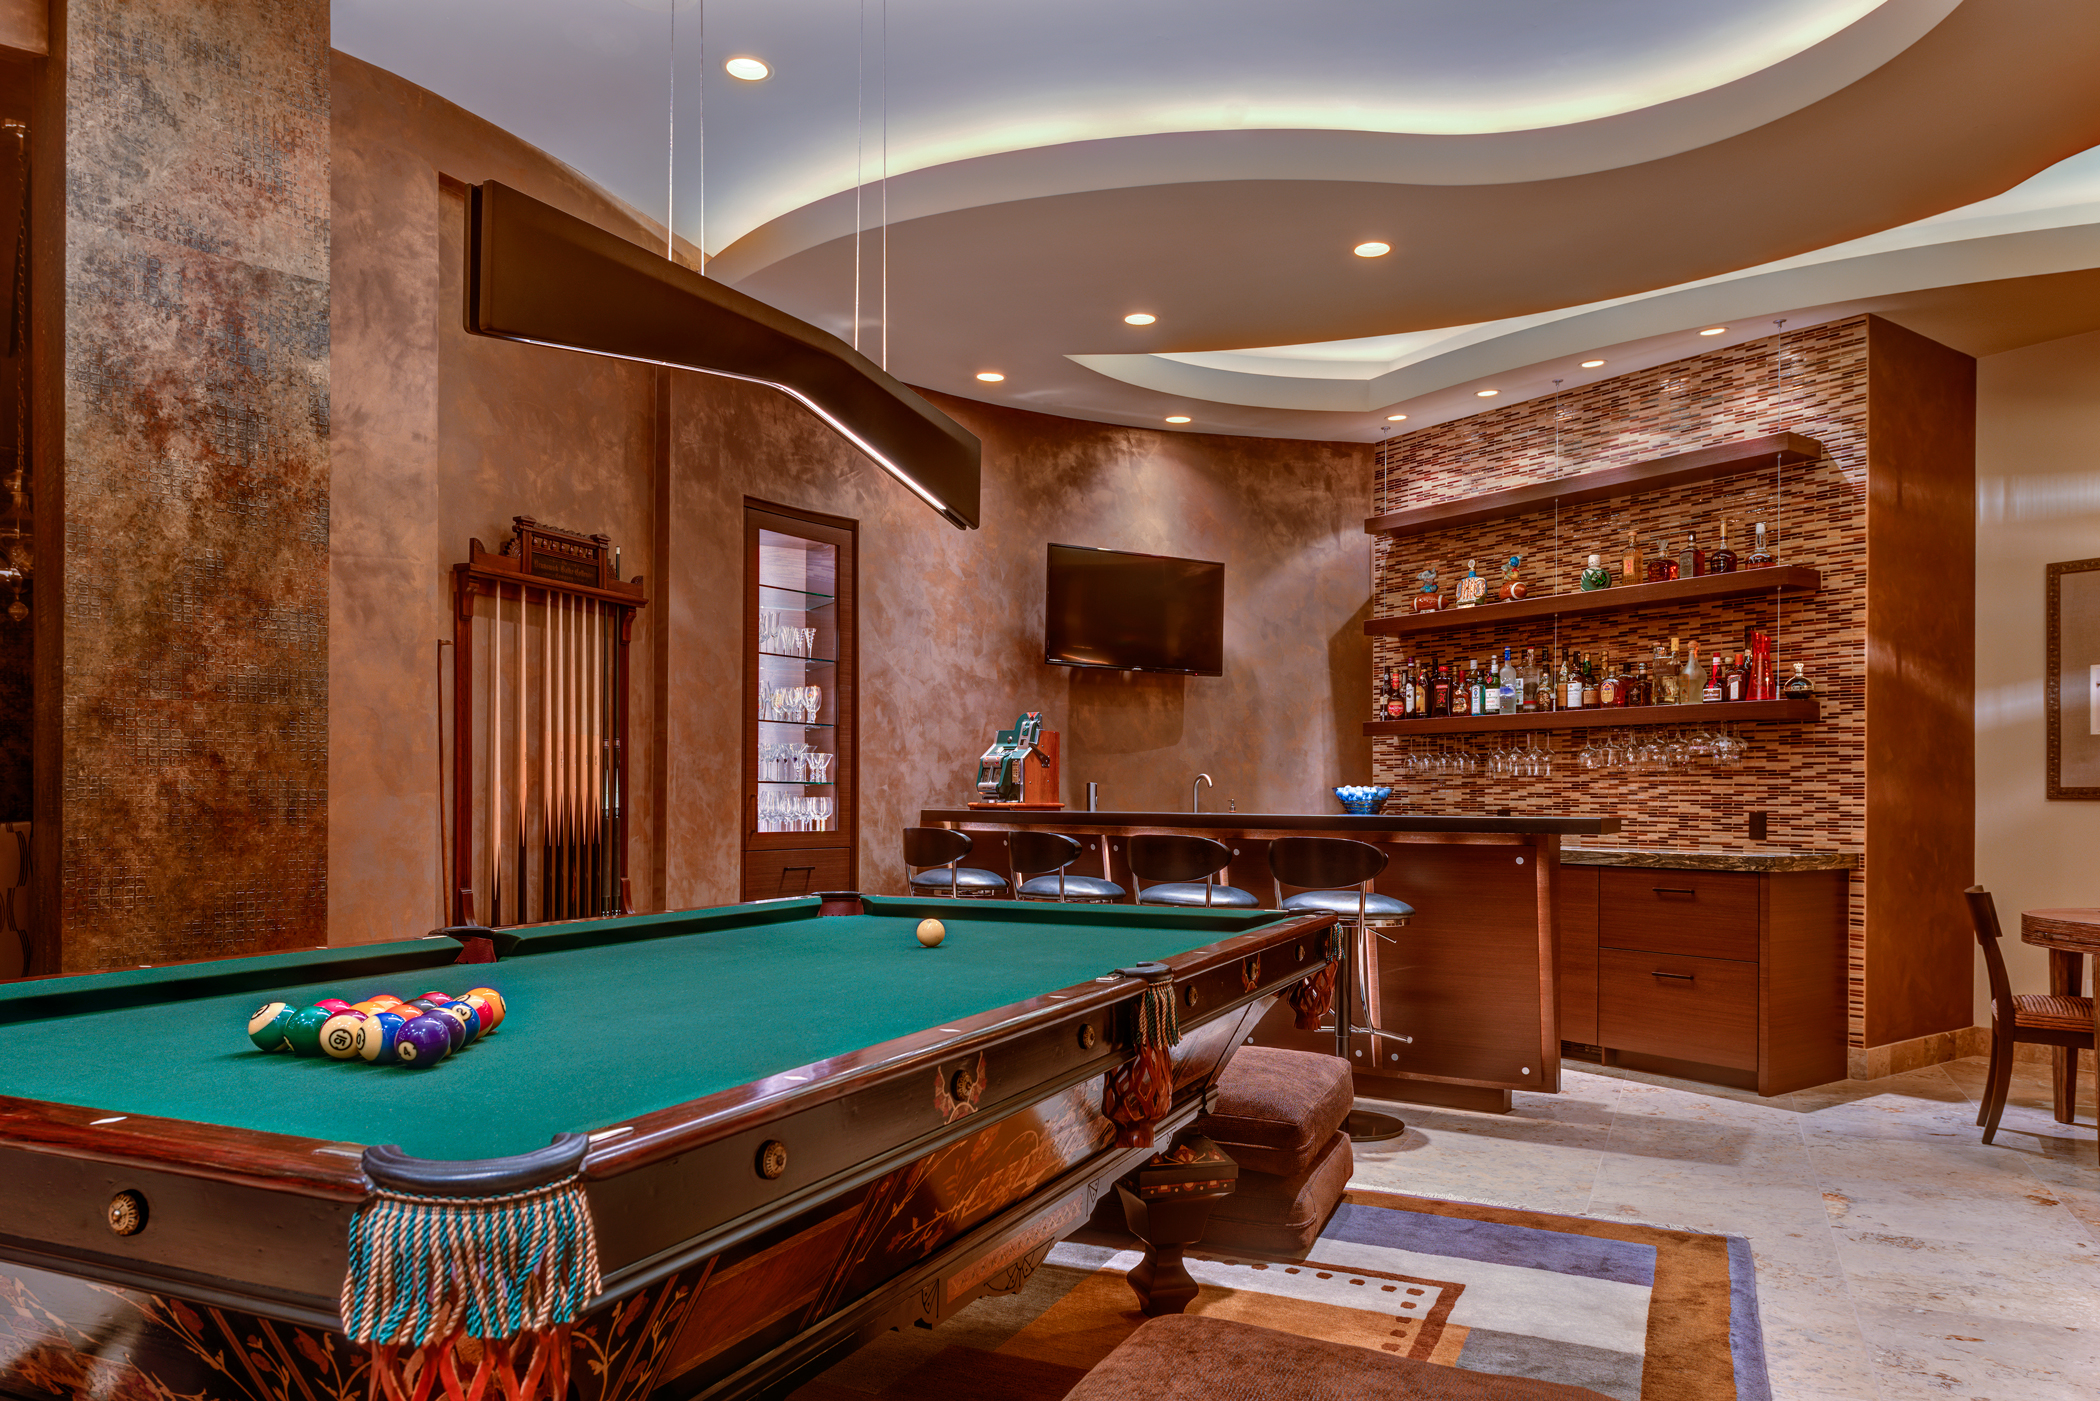 Bar light lighting a billiard room